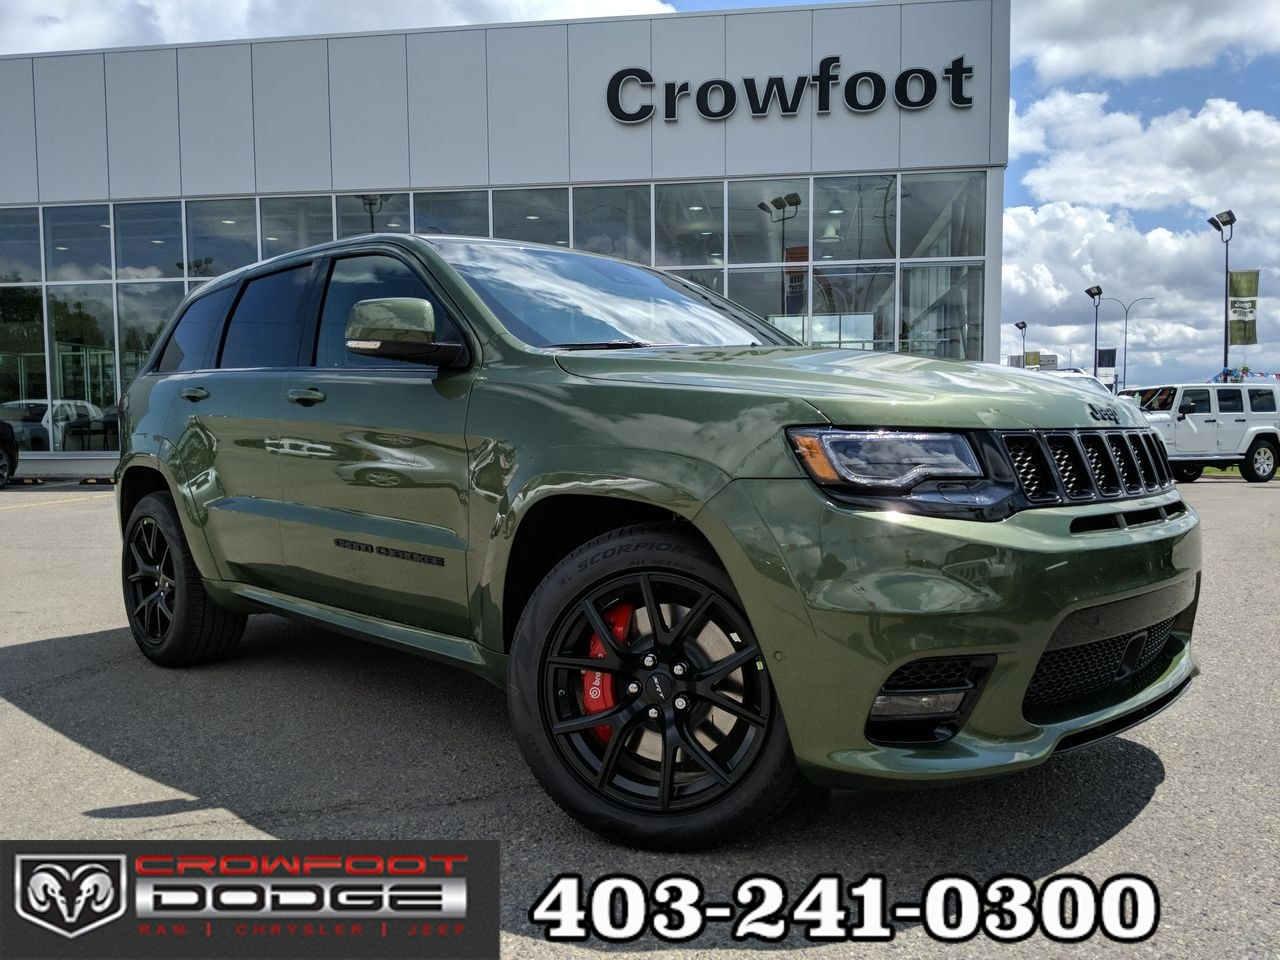 Used 2019 Jeep Grand Cherokee For Sale In Calgary Ab Nnear Airdrie Okotoks High River Ab Vin 1c4rjfdj3kc774688